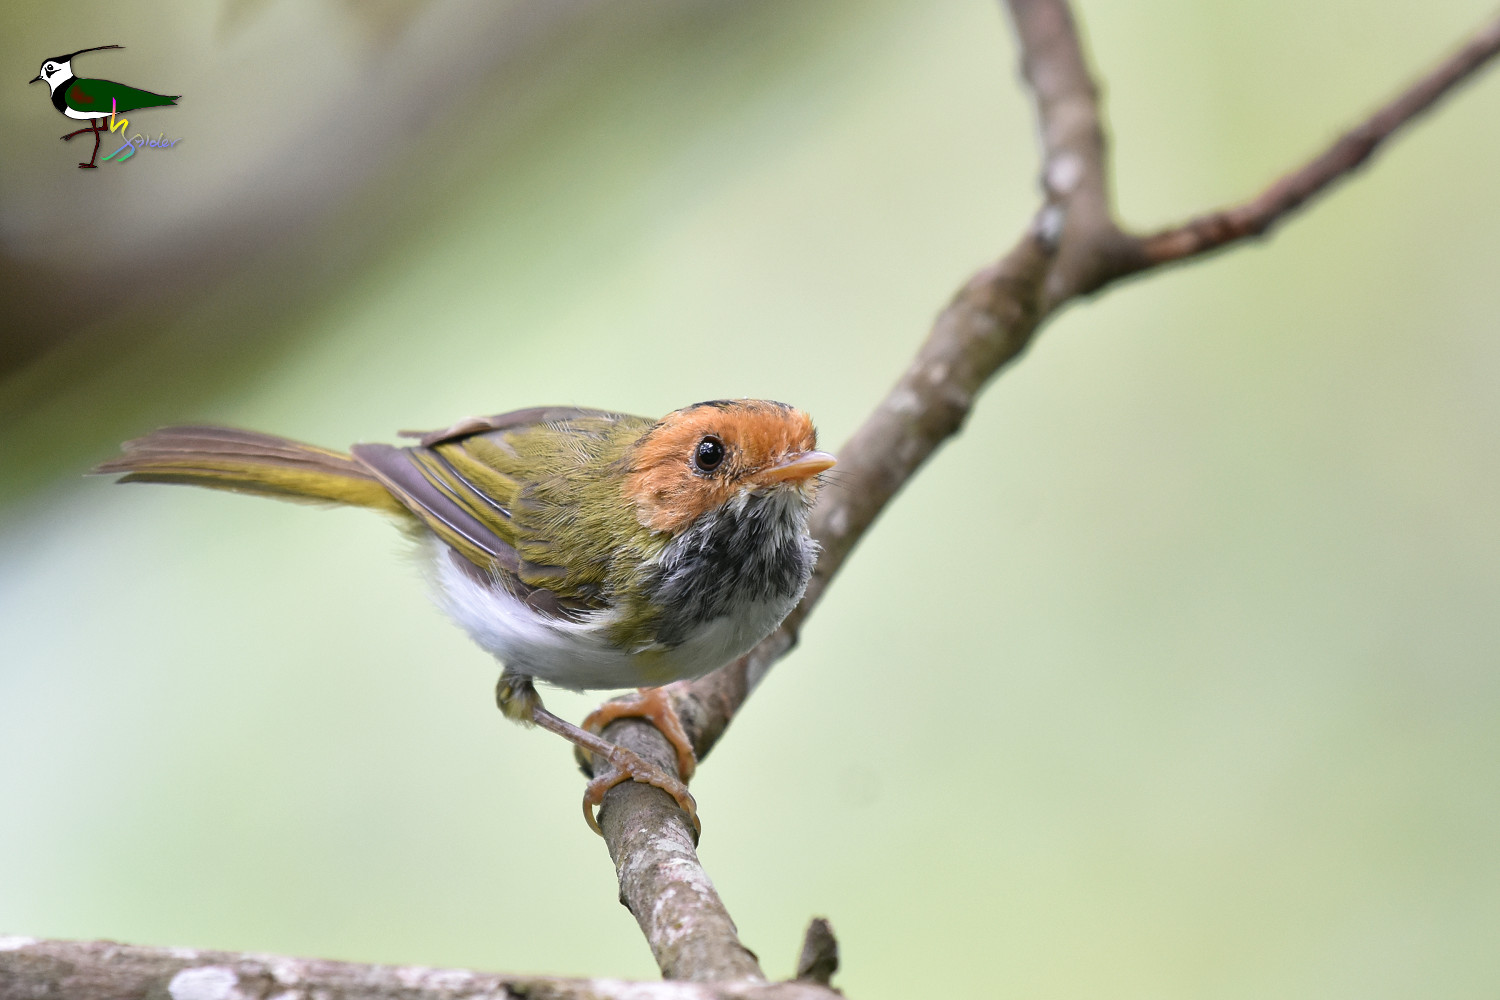 White-throated_Flycatcher_Warbler_2279